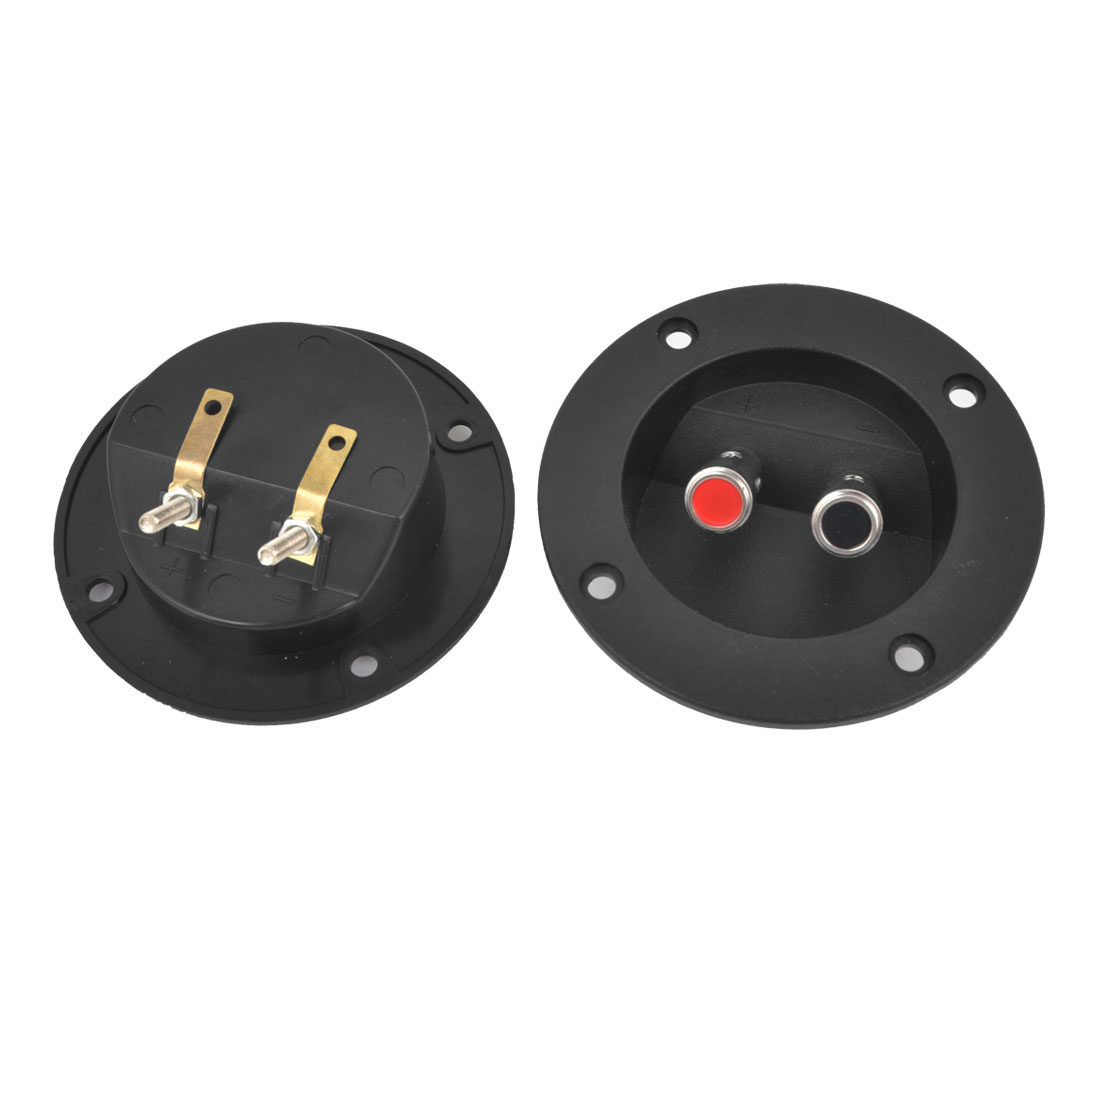 2 Pcs Black Round Spring Binding Post Double Terminal Board for Audio Speaker